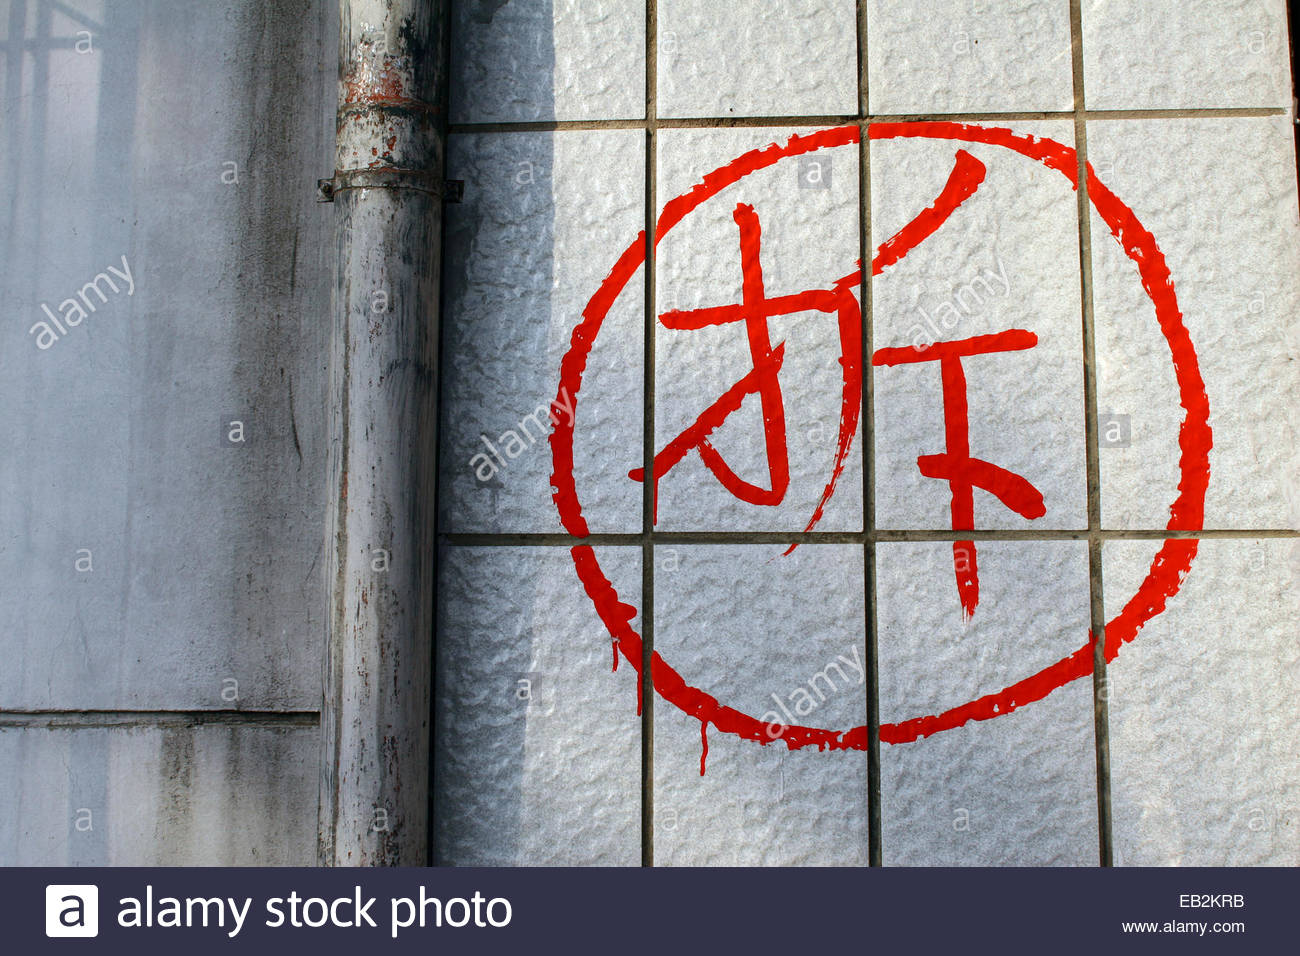 Waking up with scratches on your body prophet climate just like the local municipal that wants to demolish building they put marks and summon destroyers to destroy it buycottarizona Image collections